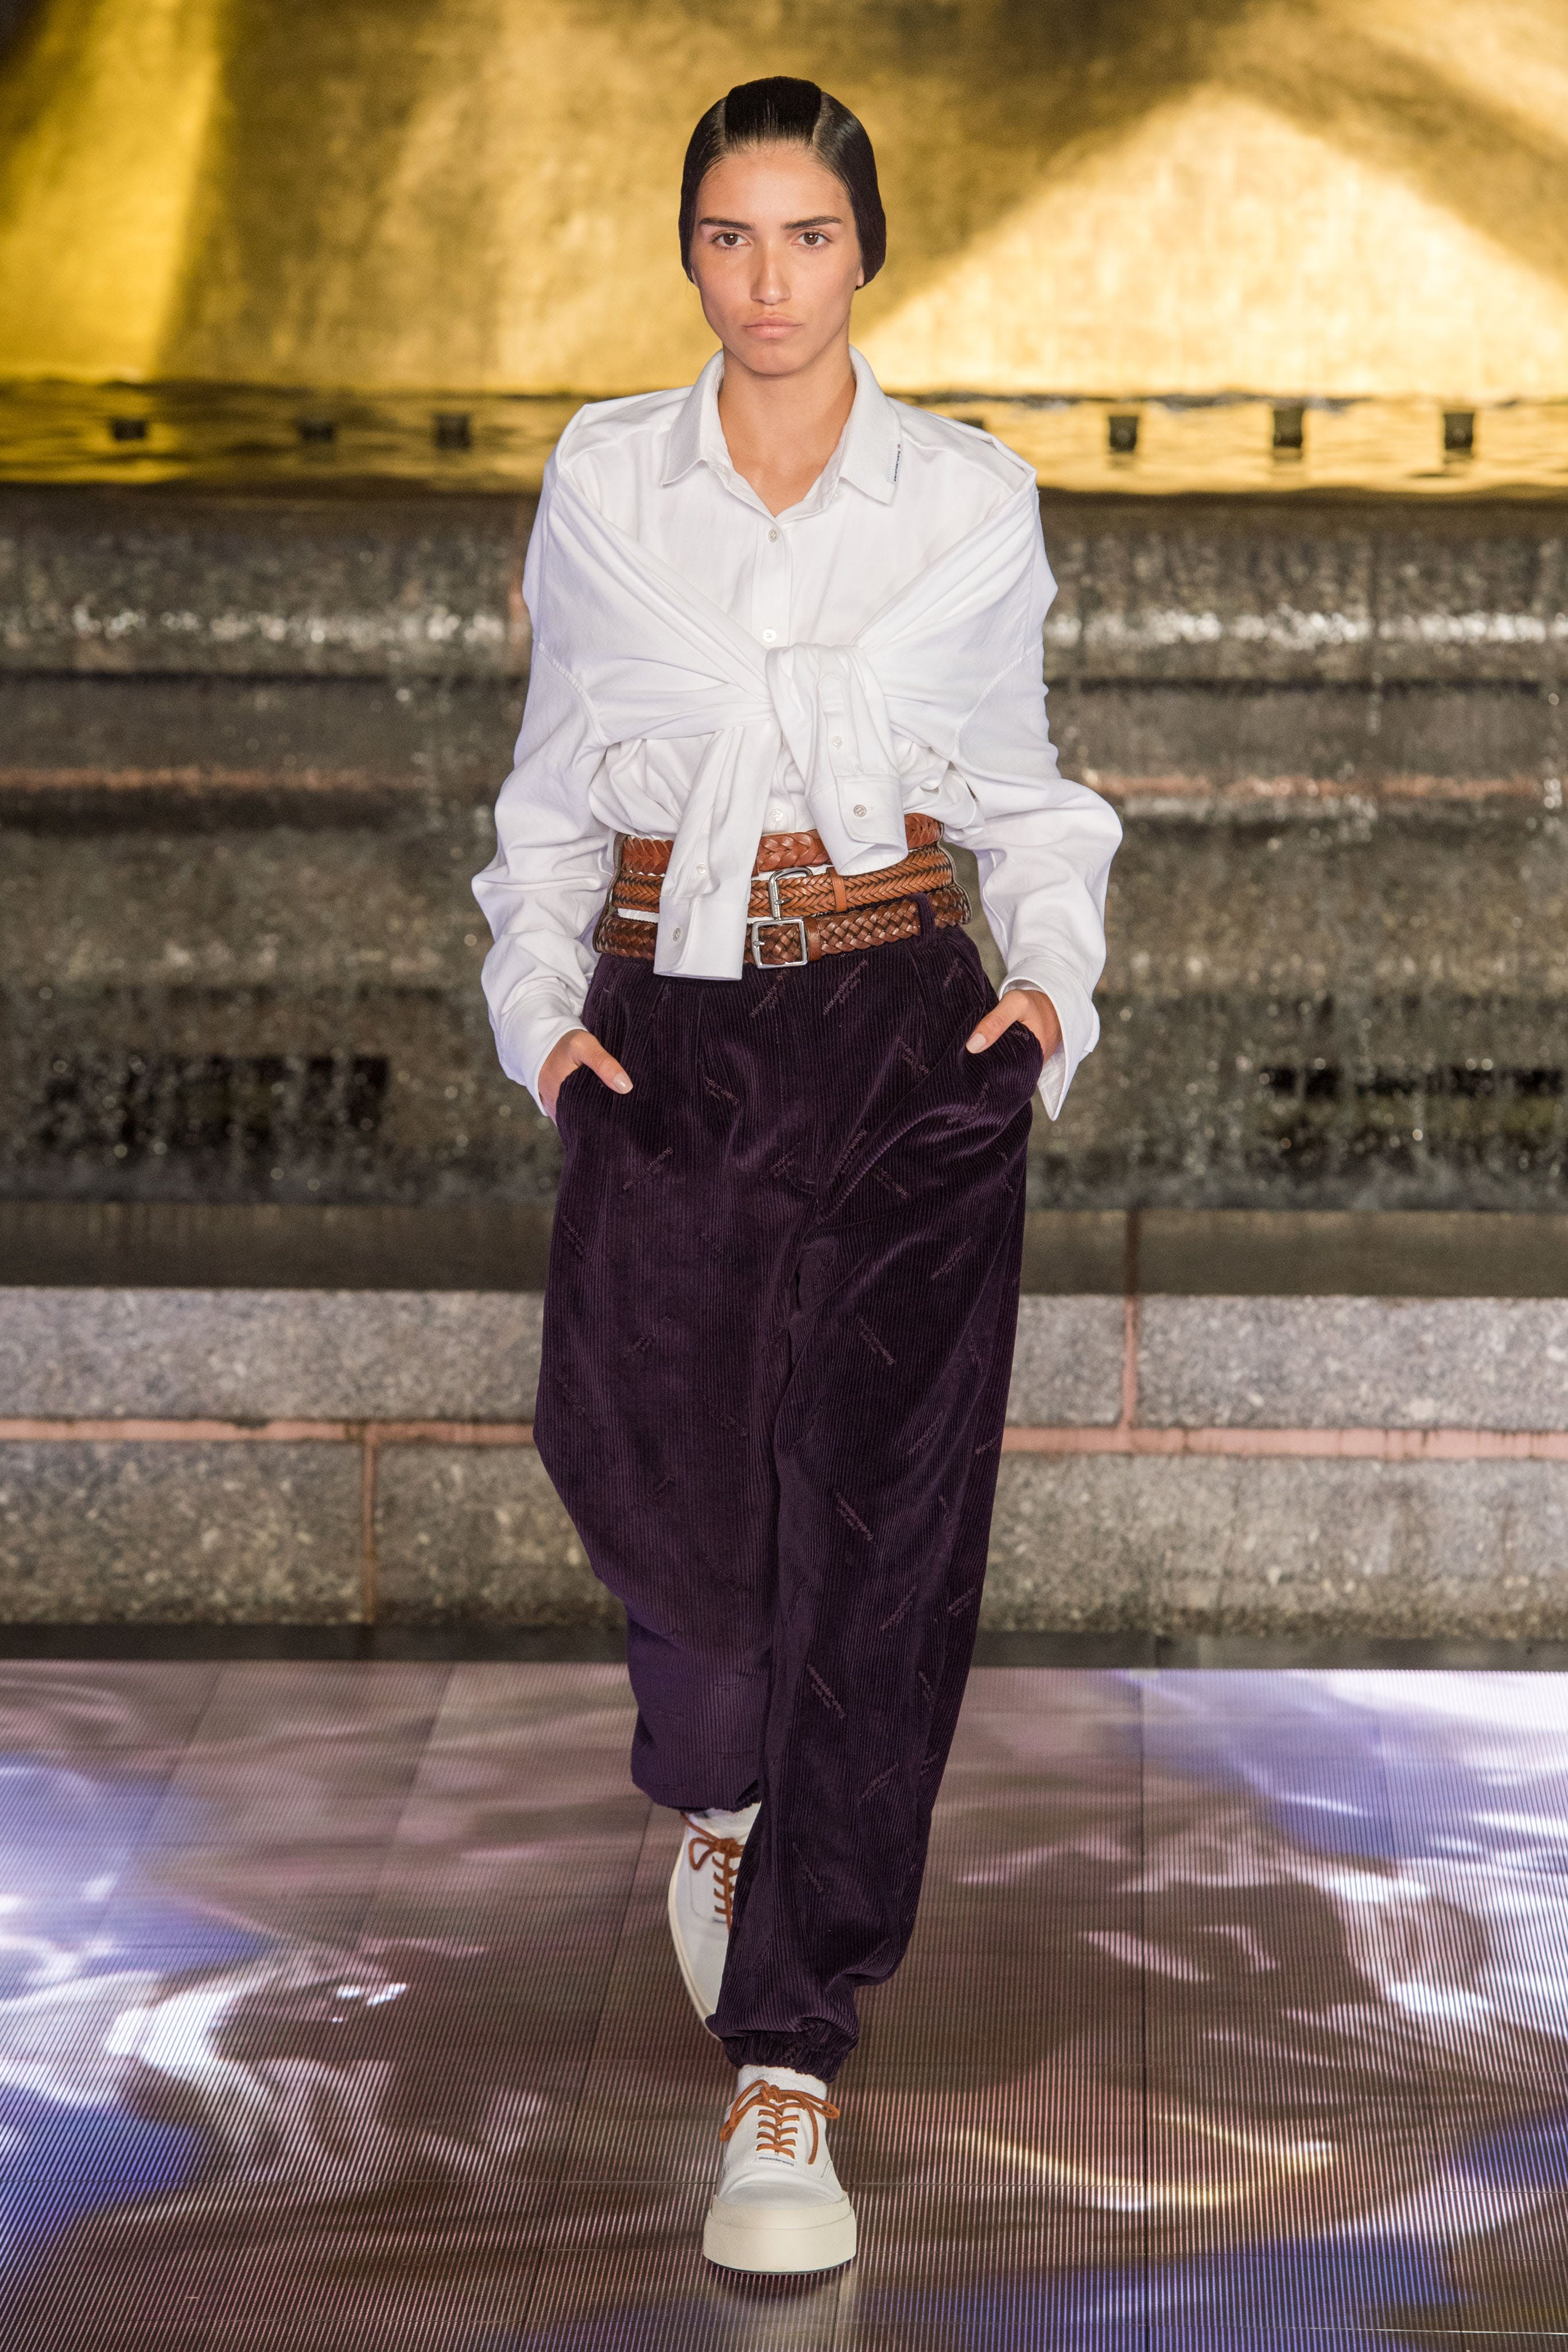 Alexander Wang Runway Tie Front Shirt in White Corduroy Logo-Print Trousers in Purple Spring 20 RTW